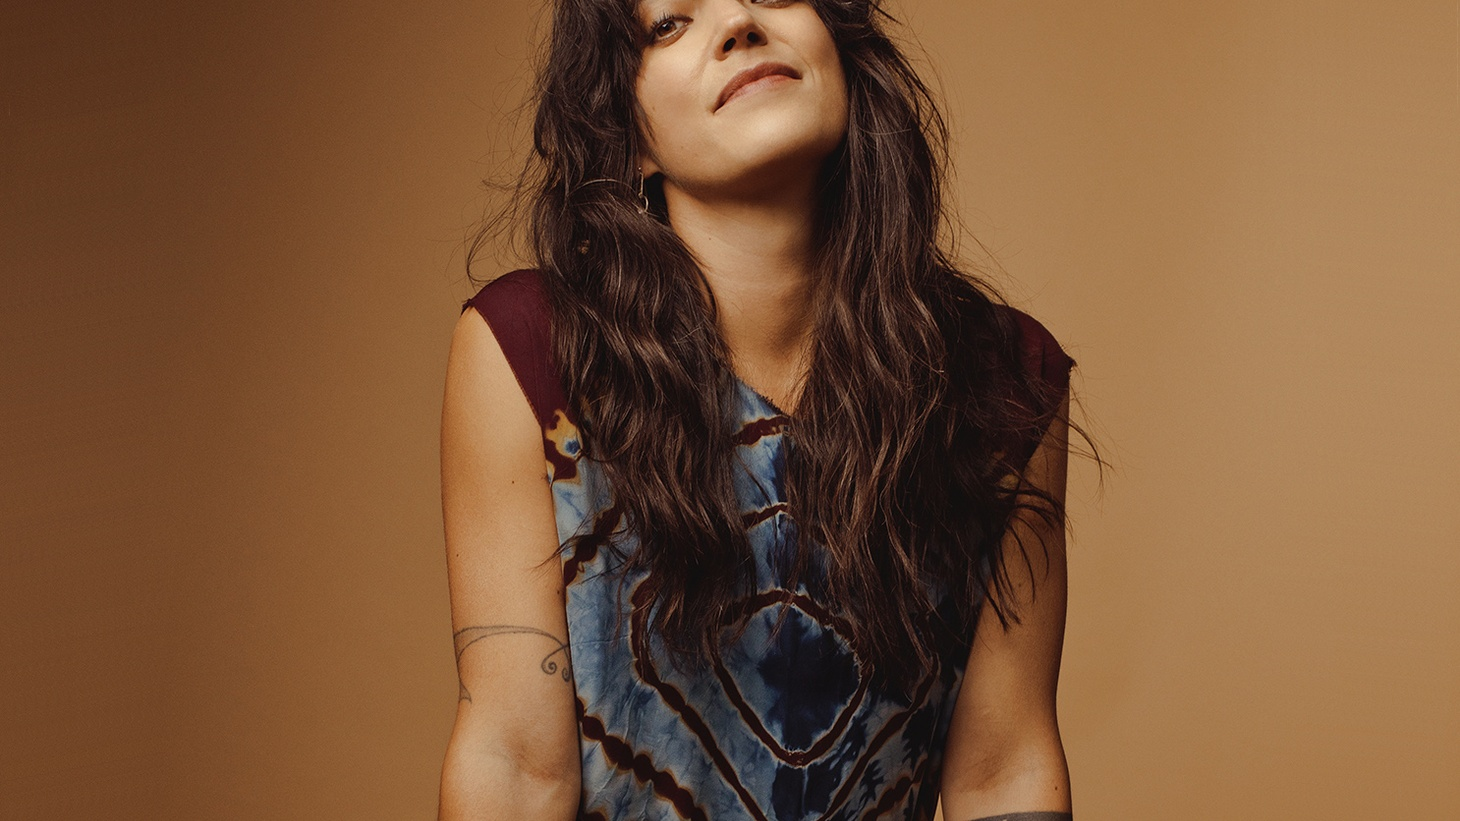 "Sharon Van Etten wants AND does it all. She says: ""I want to be a mom, a singer, an actress, go to school, but yeah, I have a stain on my shirt, oatmeal in my hair and I feel like a mess, but I'm here. Doing it."